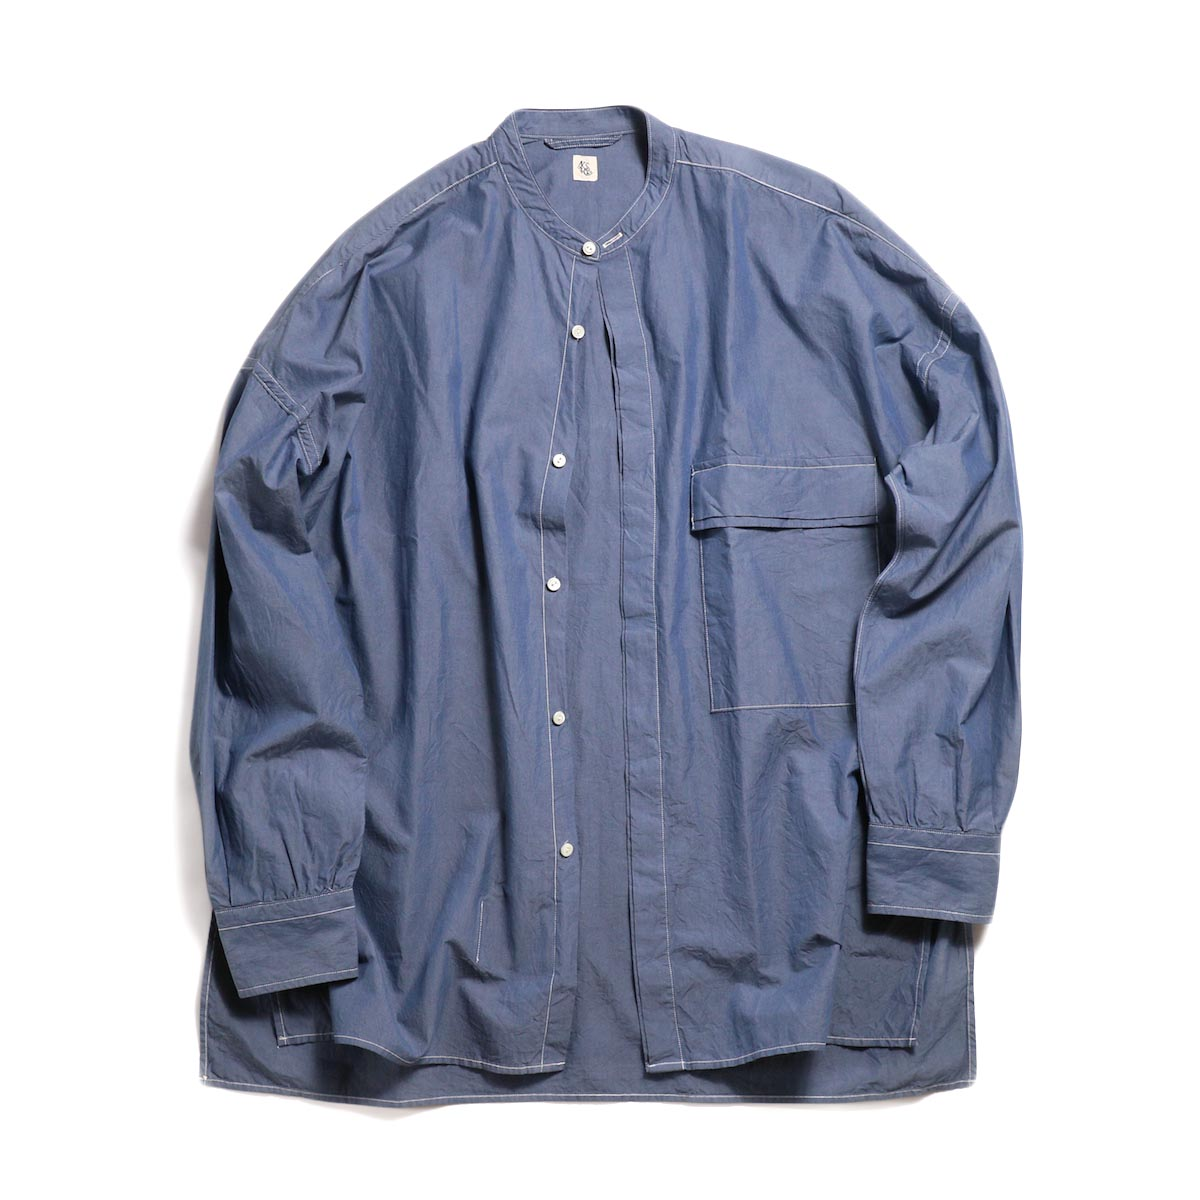 Kaptain Sunshine / Fly Front Band Collar Shirt -Blue Gray